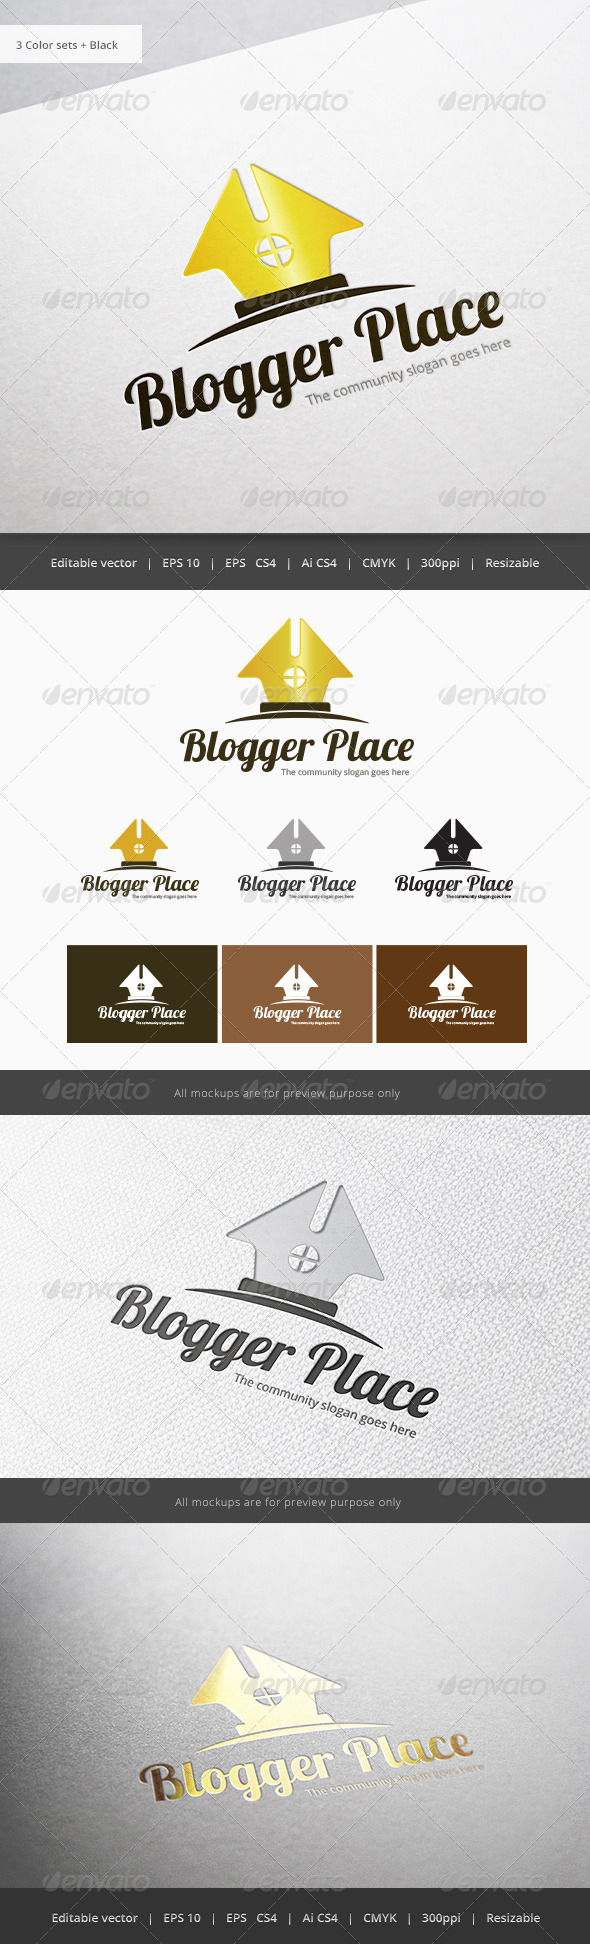 GraphicRiver Blogger Place 5933835